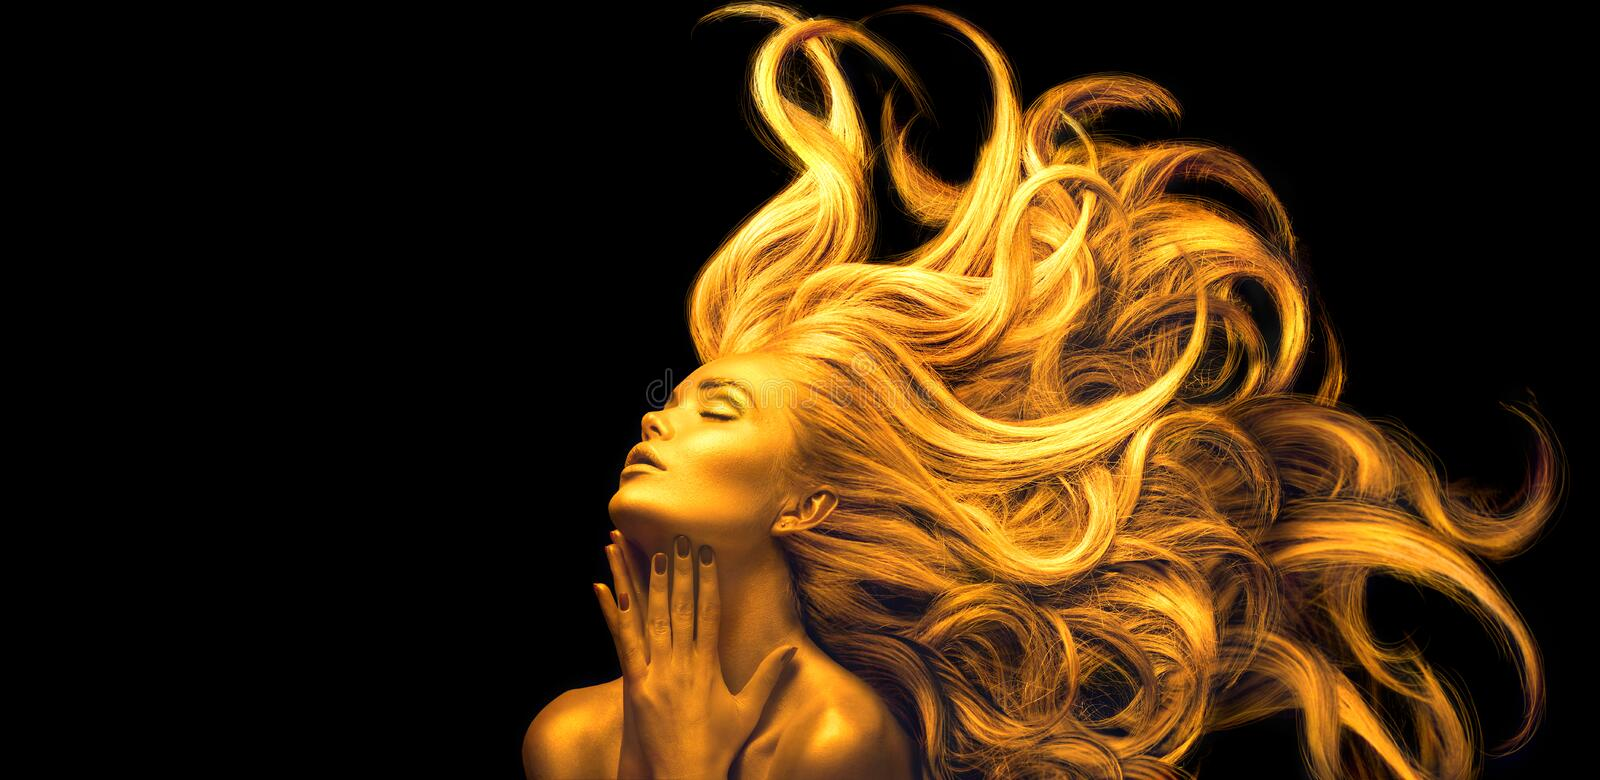 Gold Woman. Beauty fashion model girl with Golden make up, Long hair on black background. Gold glowing skin and fluttering hair. Metallic, glance Fashion art stock images